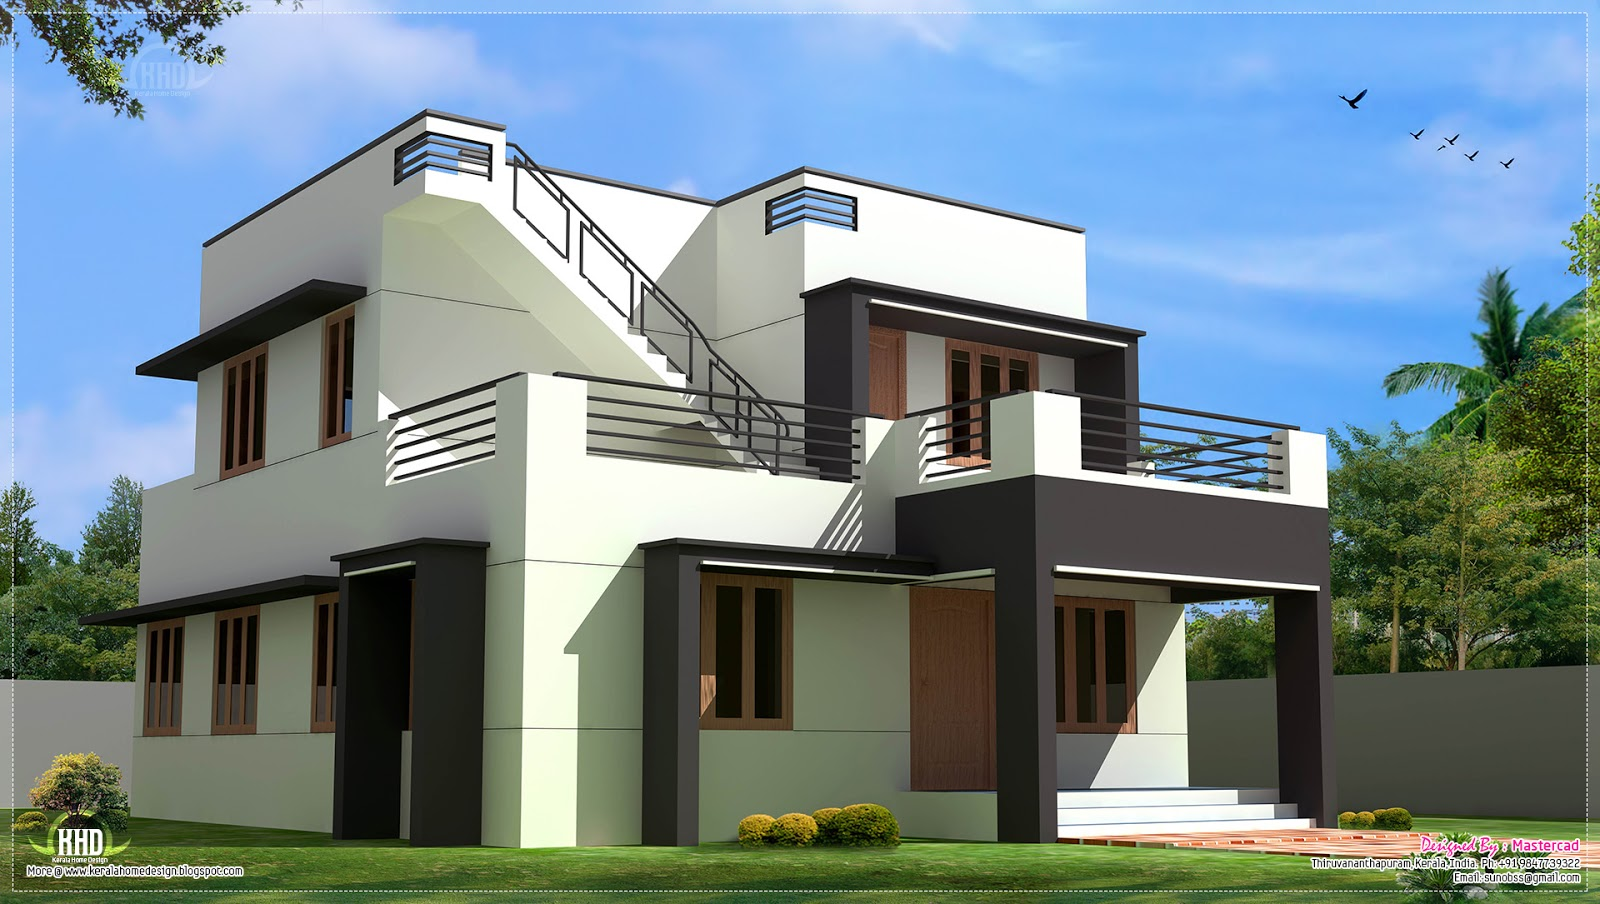 Modern house design in 1700 kerala home design for Best home designs india